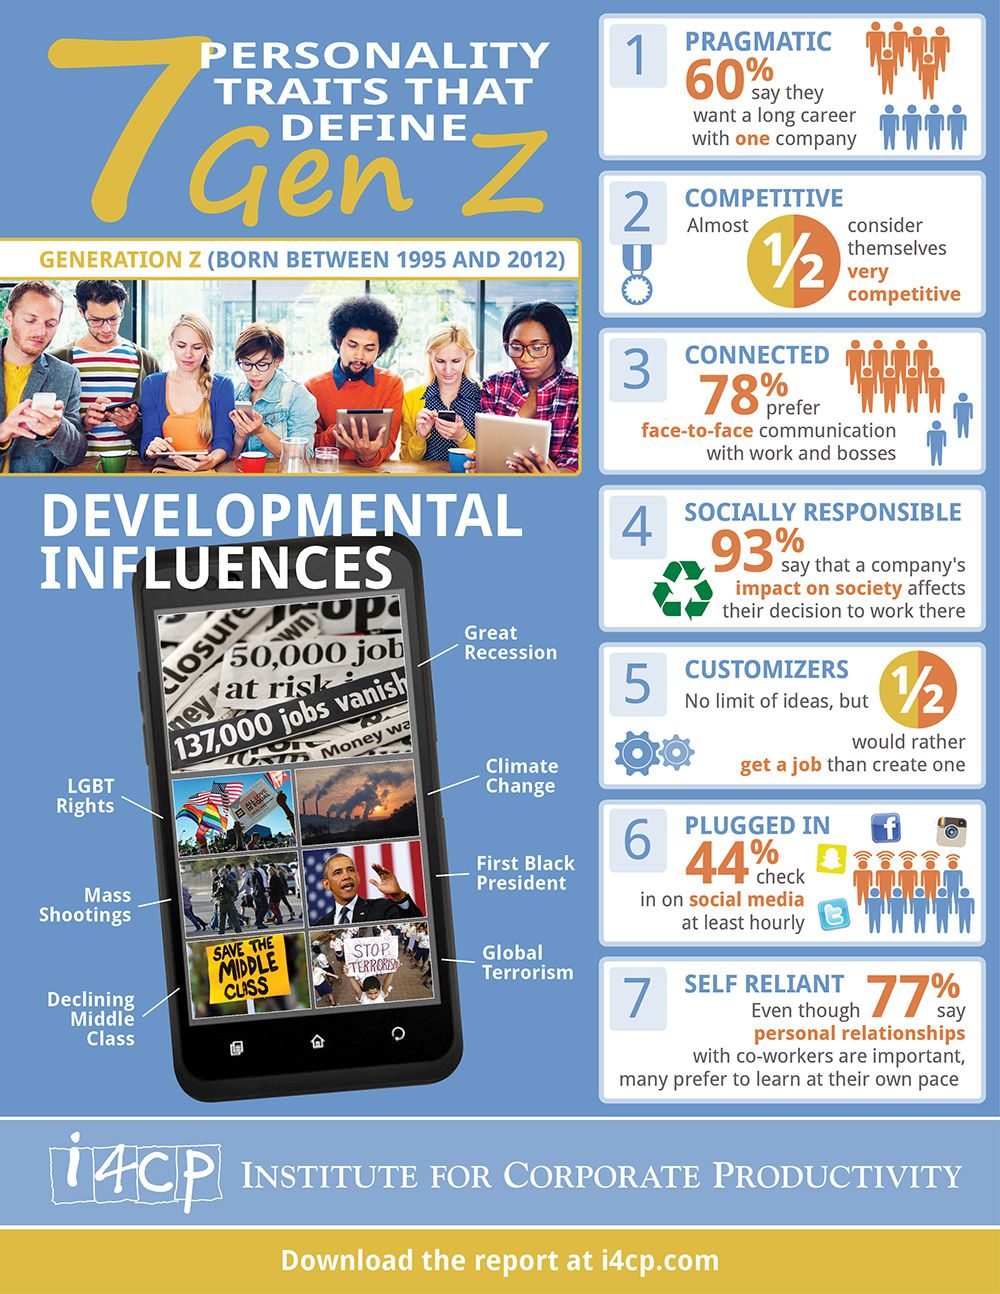 7 Personality Traits That Define Gen Z 1000 Jpg 1 000 1 294 Pixels Generational Differences Generation Alpha Personality Traits